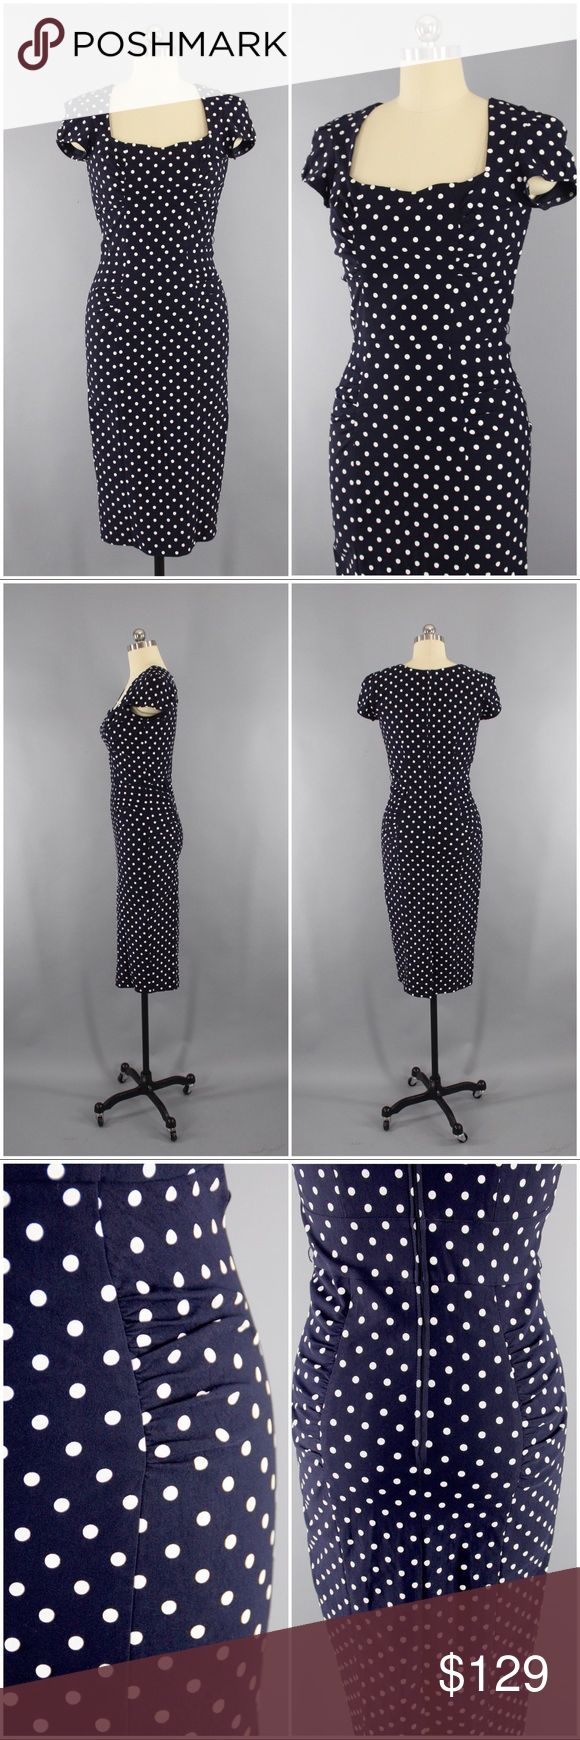 Selling this Retro Polka Dot Dress by Stop Staring size 8/10 on Poshmark! My username is: thisbluebird. #shopmycloset #poshmark #fashion #shopping #style #forsale #Stop Staring #Dresses & Skirts